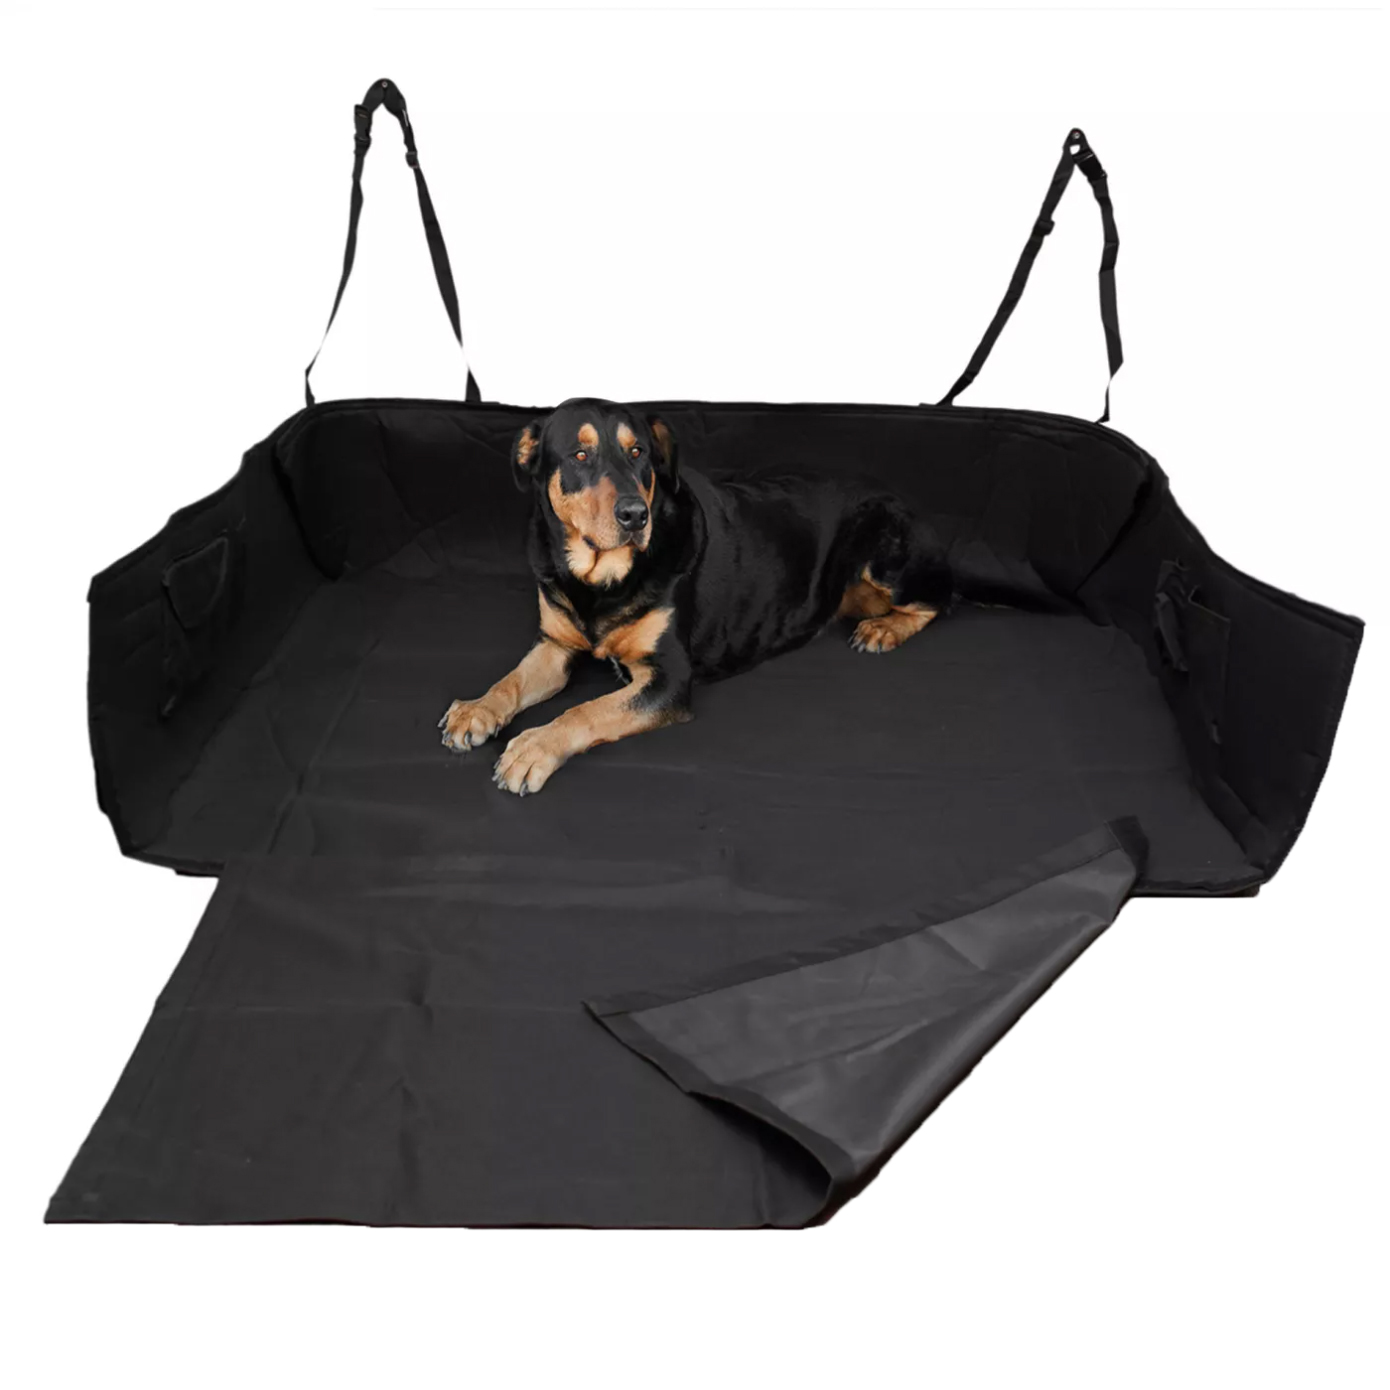 paws-and-pals-dog-trunk-bed-liner